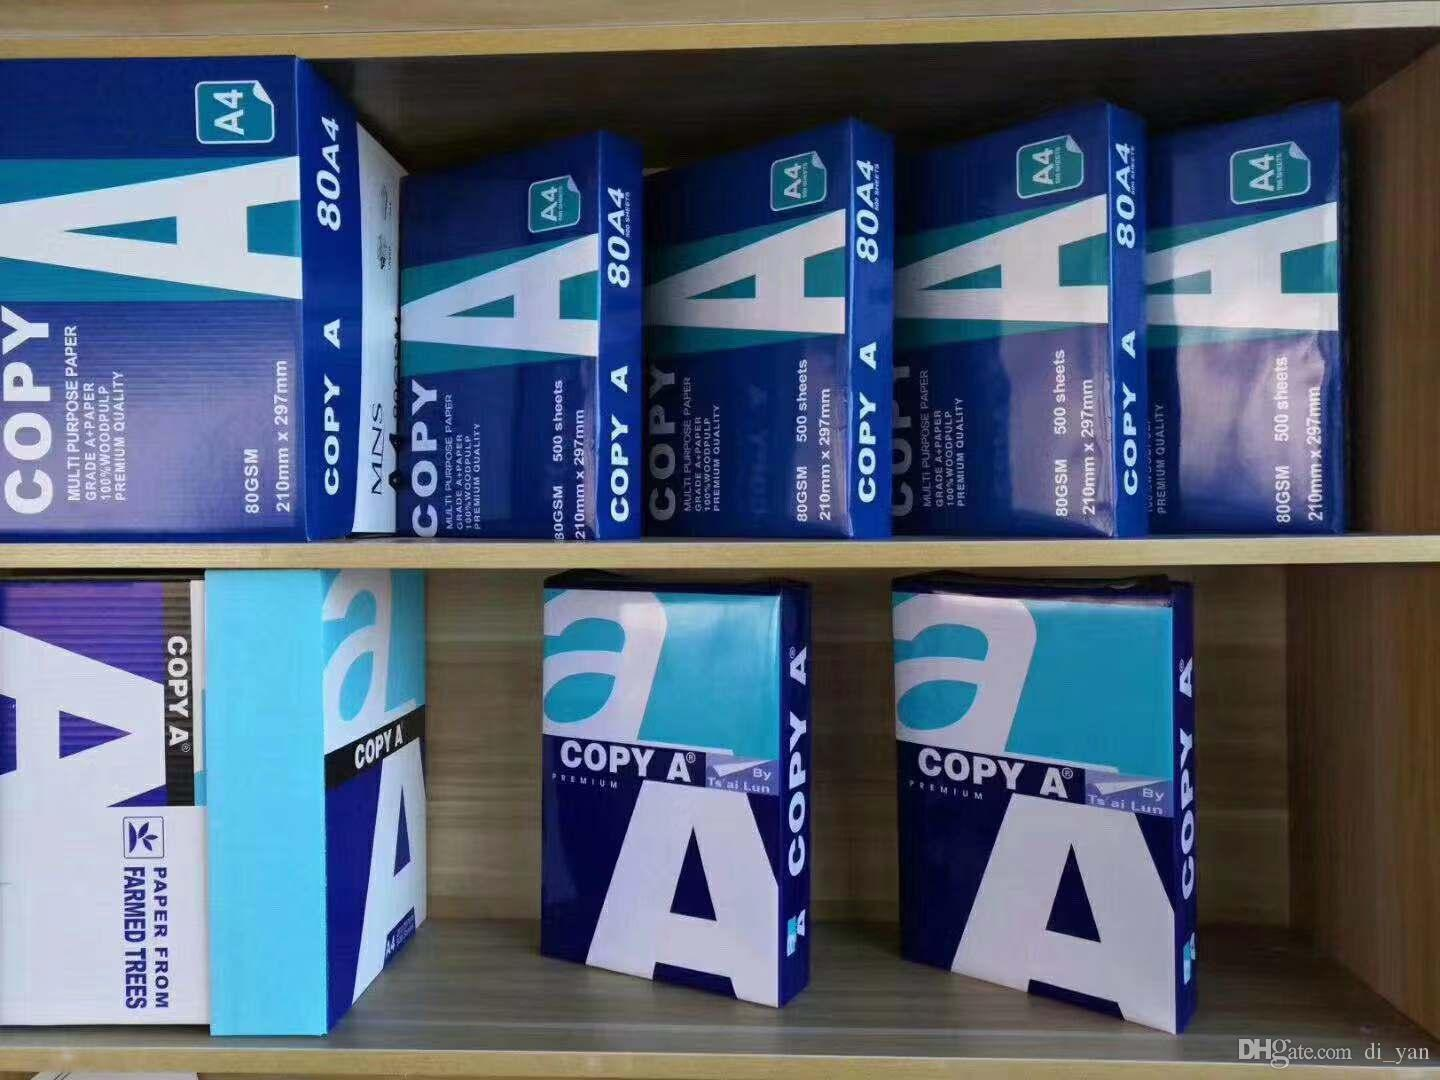 A4 printing copy paper 70g / 80g copy paper 1 pack 500 sheets